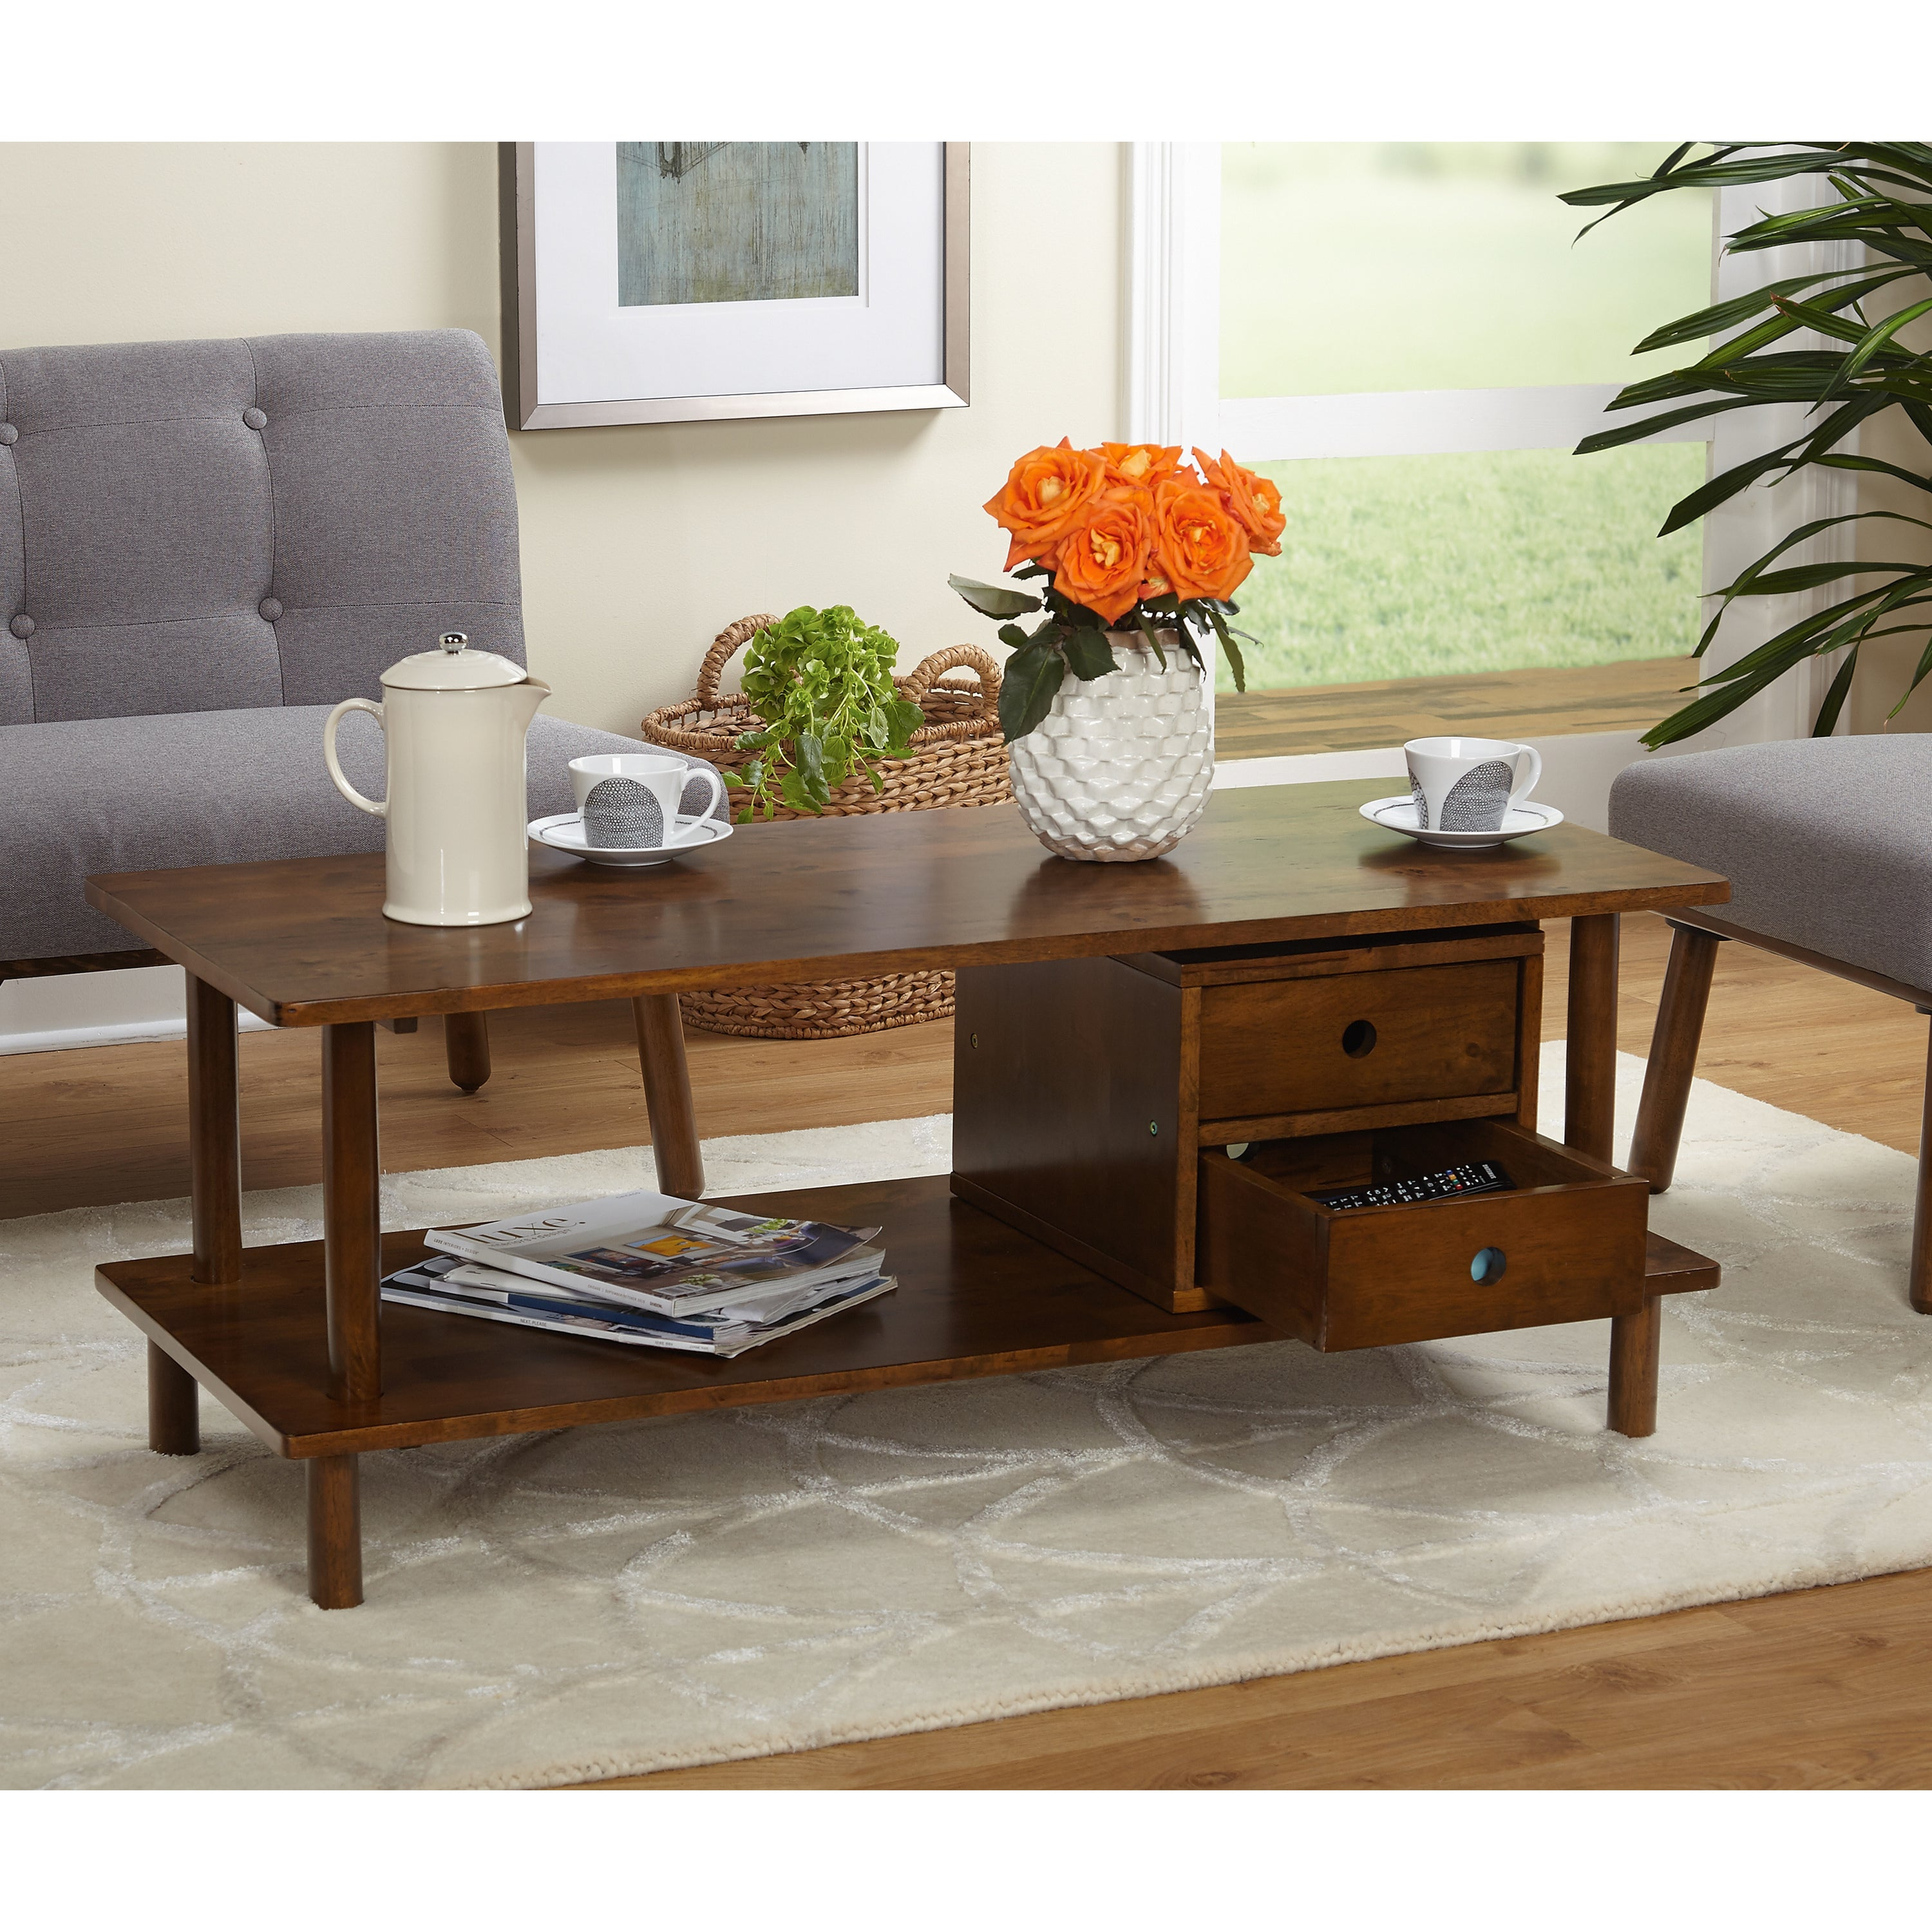 Simple Living Double Decker Storage TV Stand Coffee Table Free